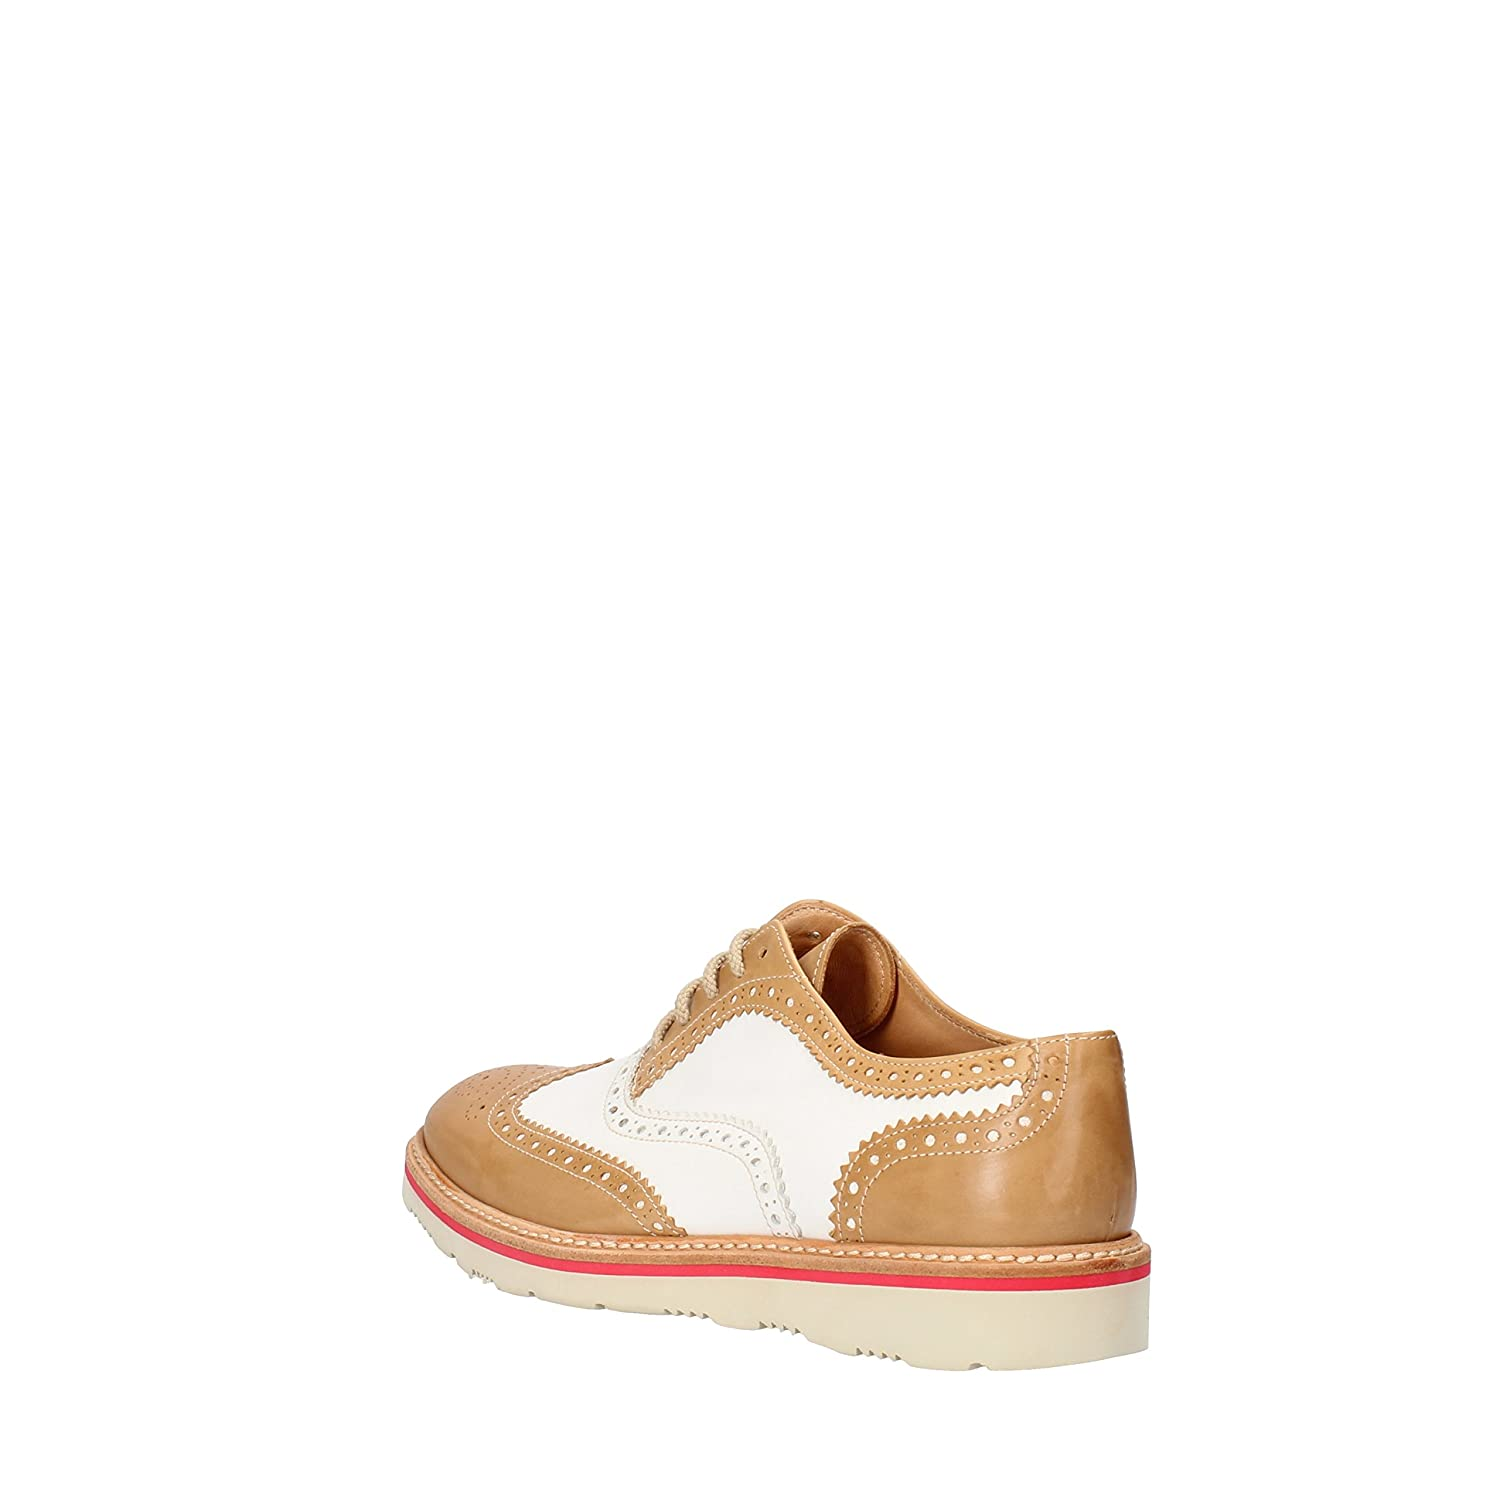 CALPIERRE Oxfords-Shoes Womens Leather White